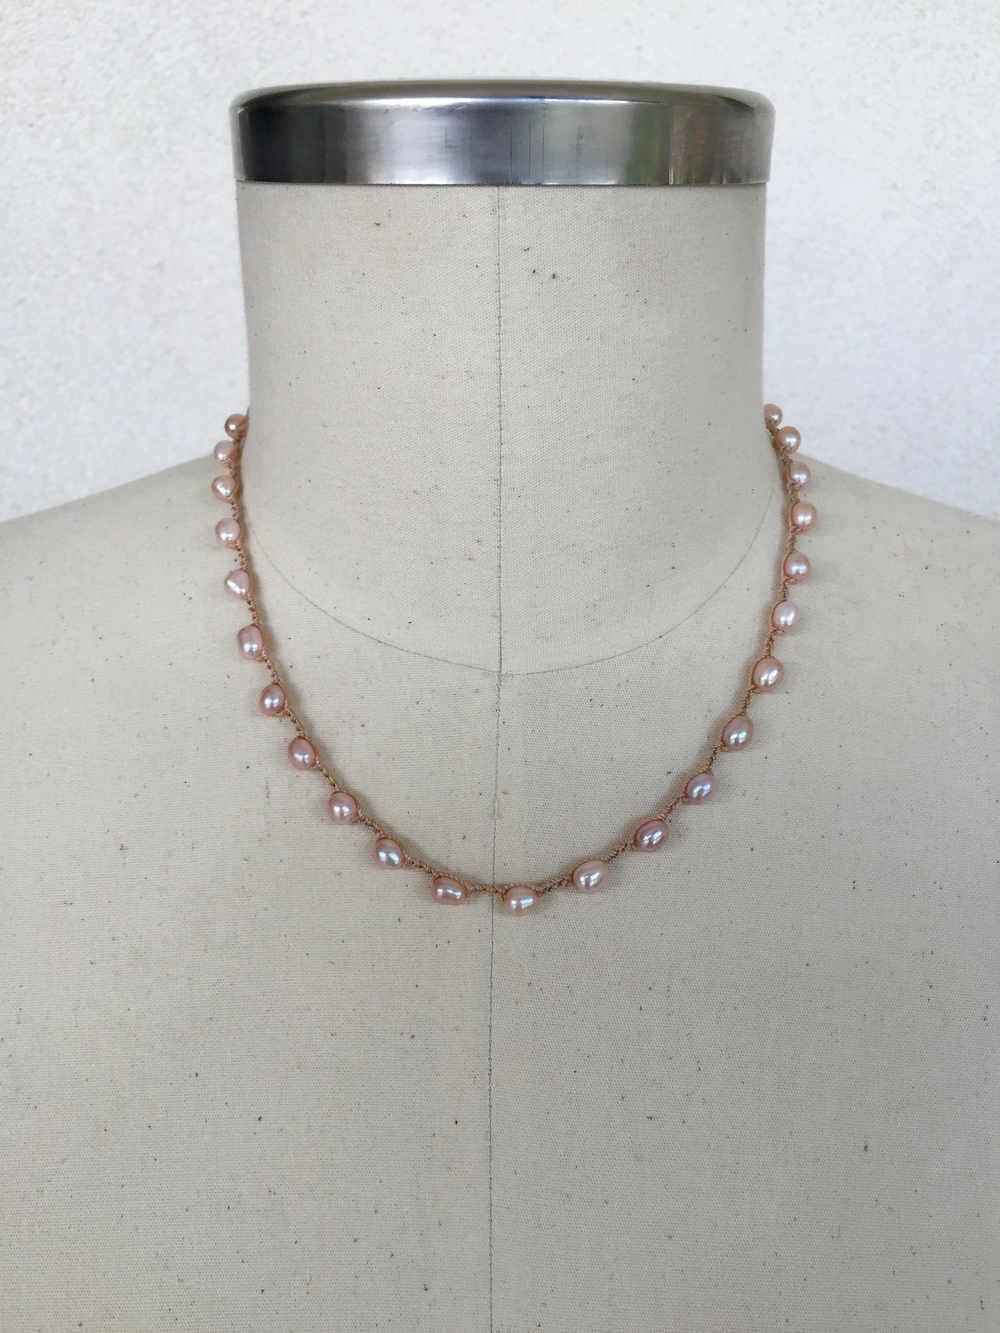 "Mauve Pearl on Mauve - shown here in 21"" length"